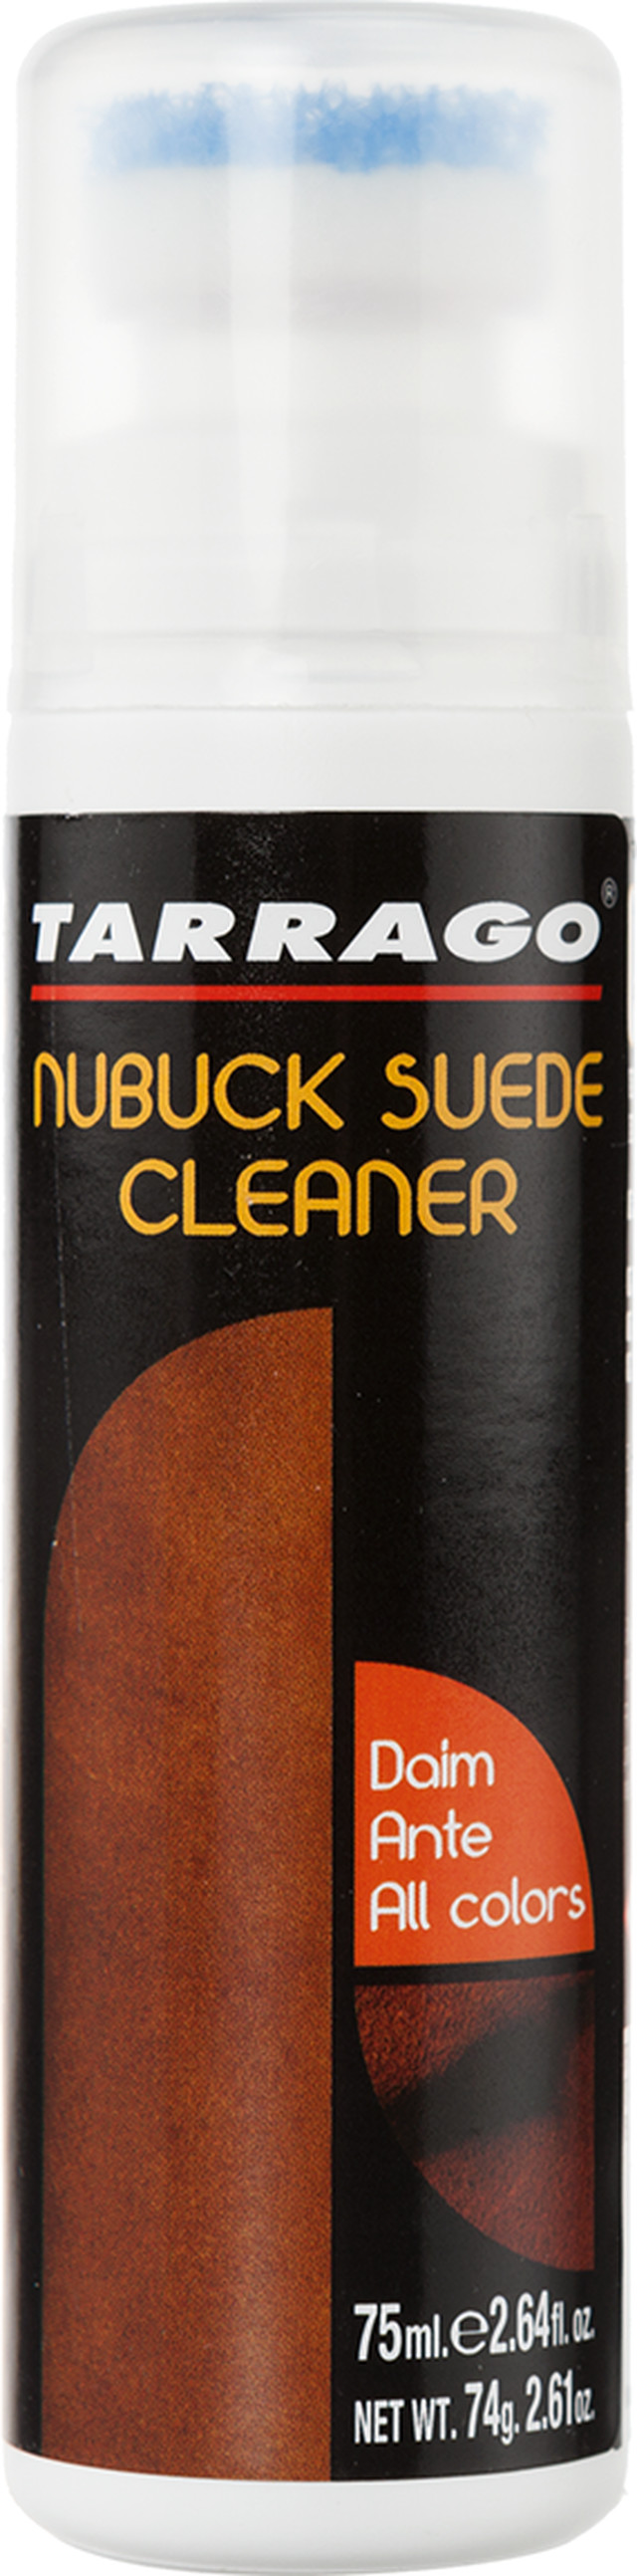 Tarrago Nubuck Cleaner 75ml TCA170000075